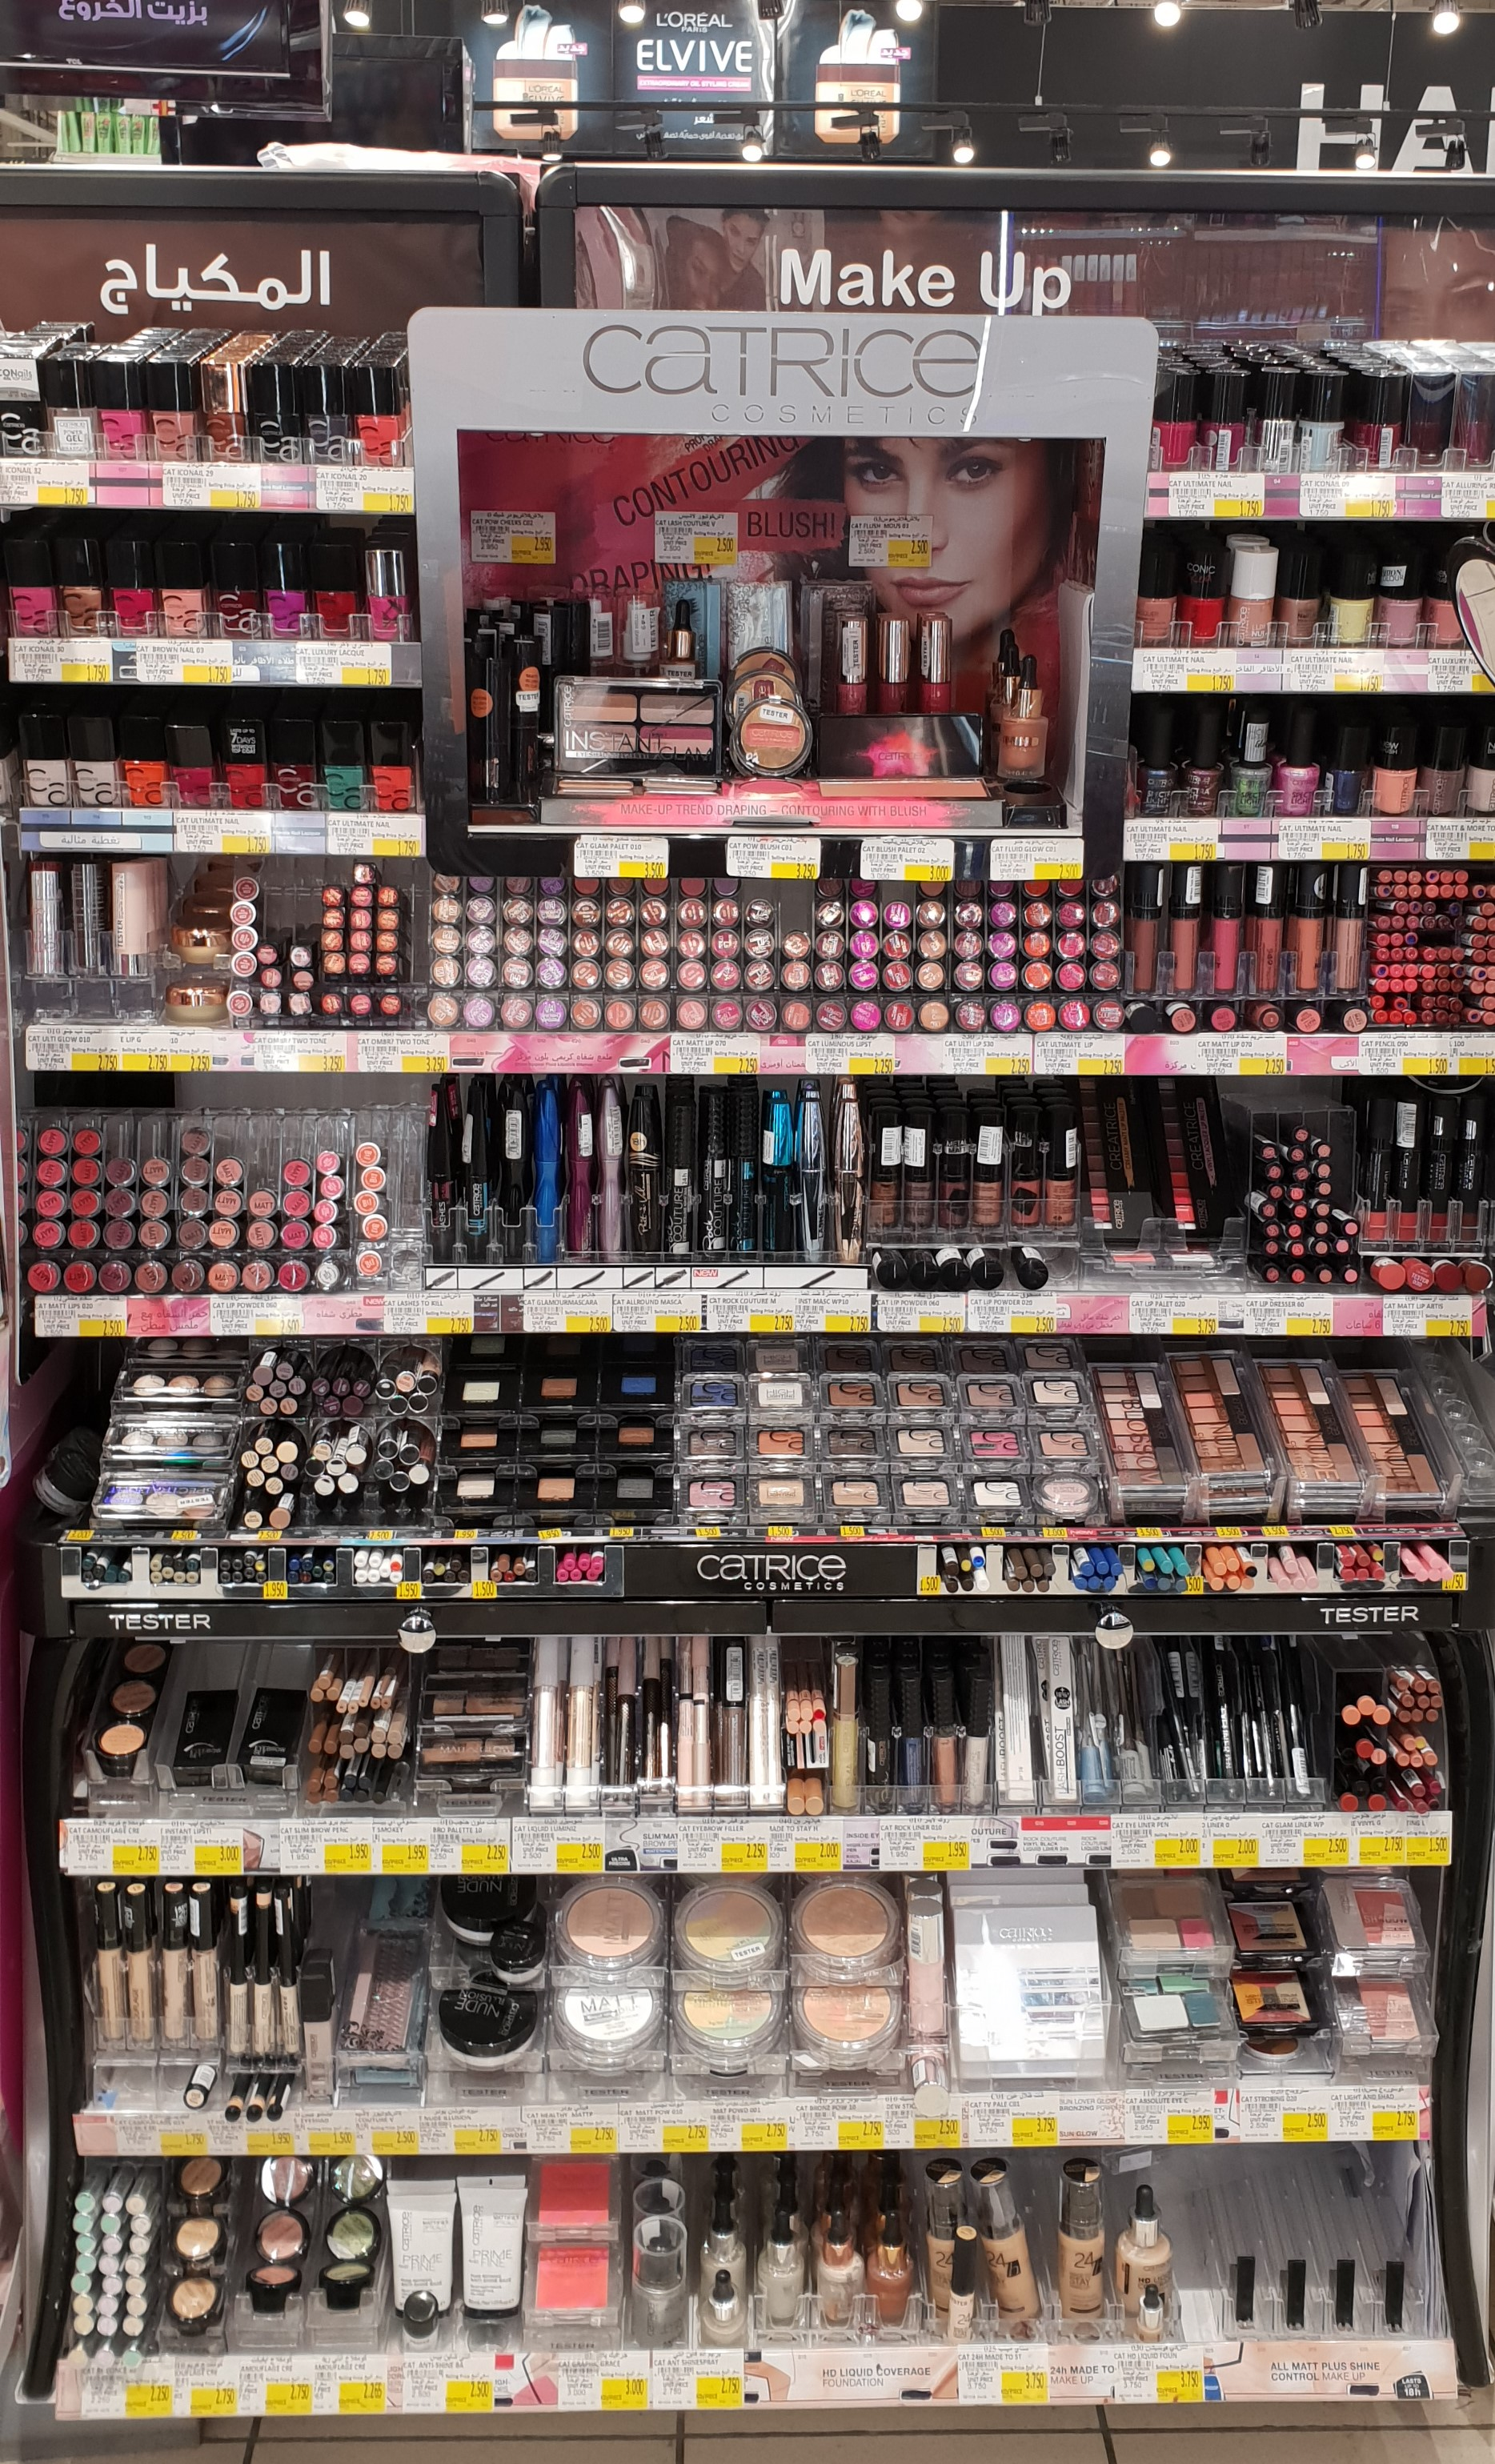 Spotted at Carrefour (Catrice Cosmetics + Essence Cosmetics)